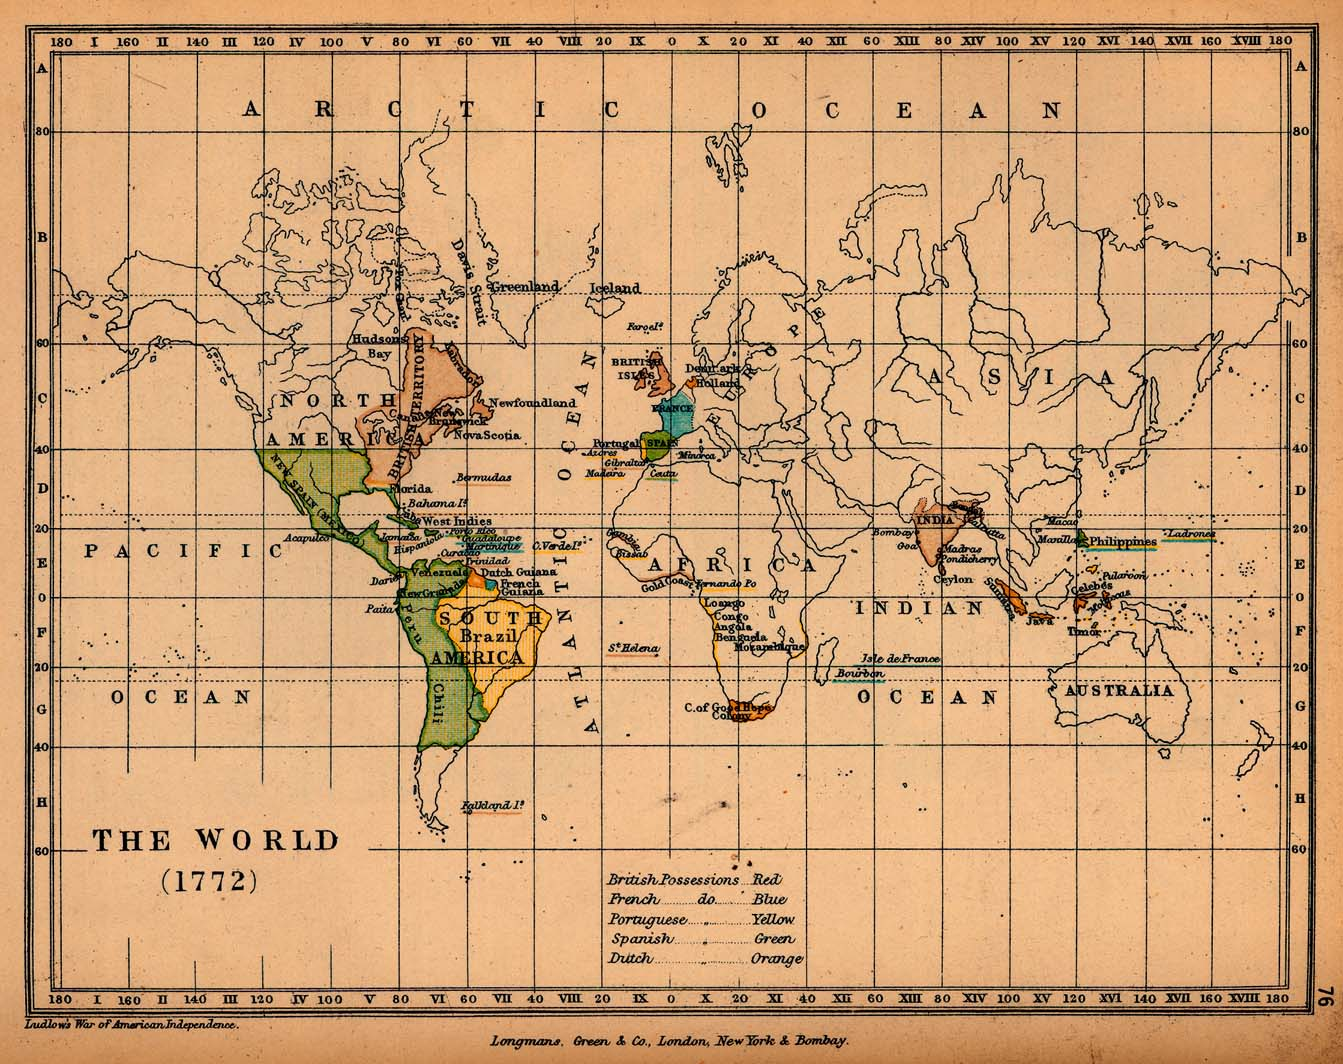 World historical maps perry castaeda map collection ut library the world 1772 gumiabroncs Gallery